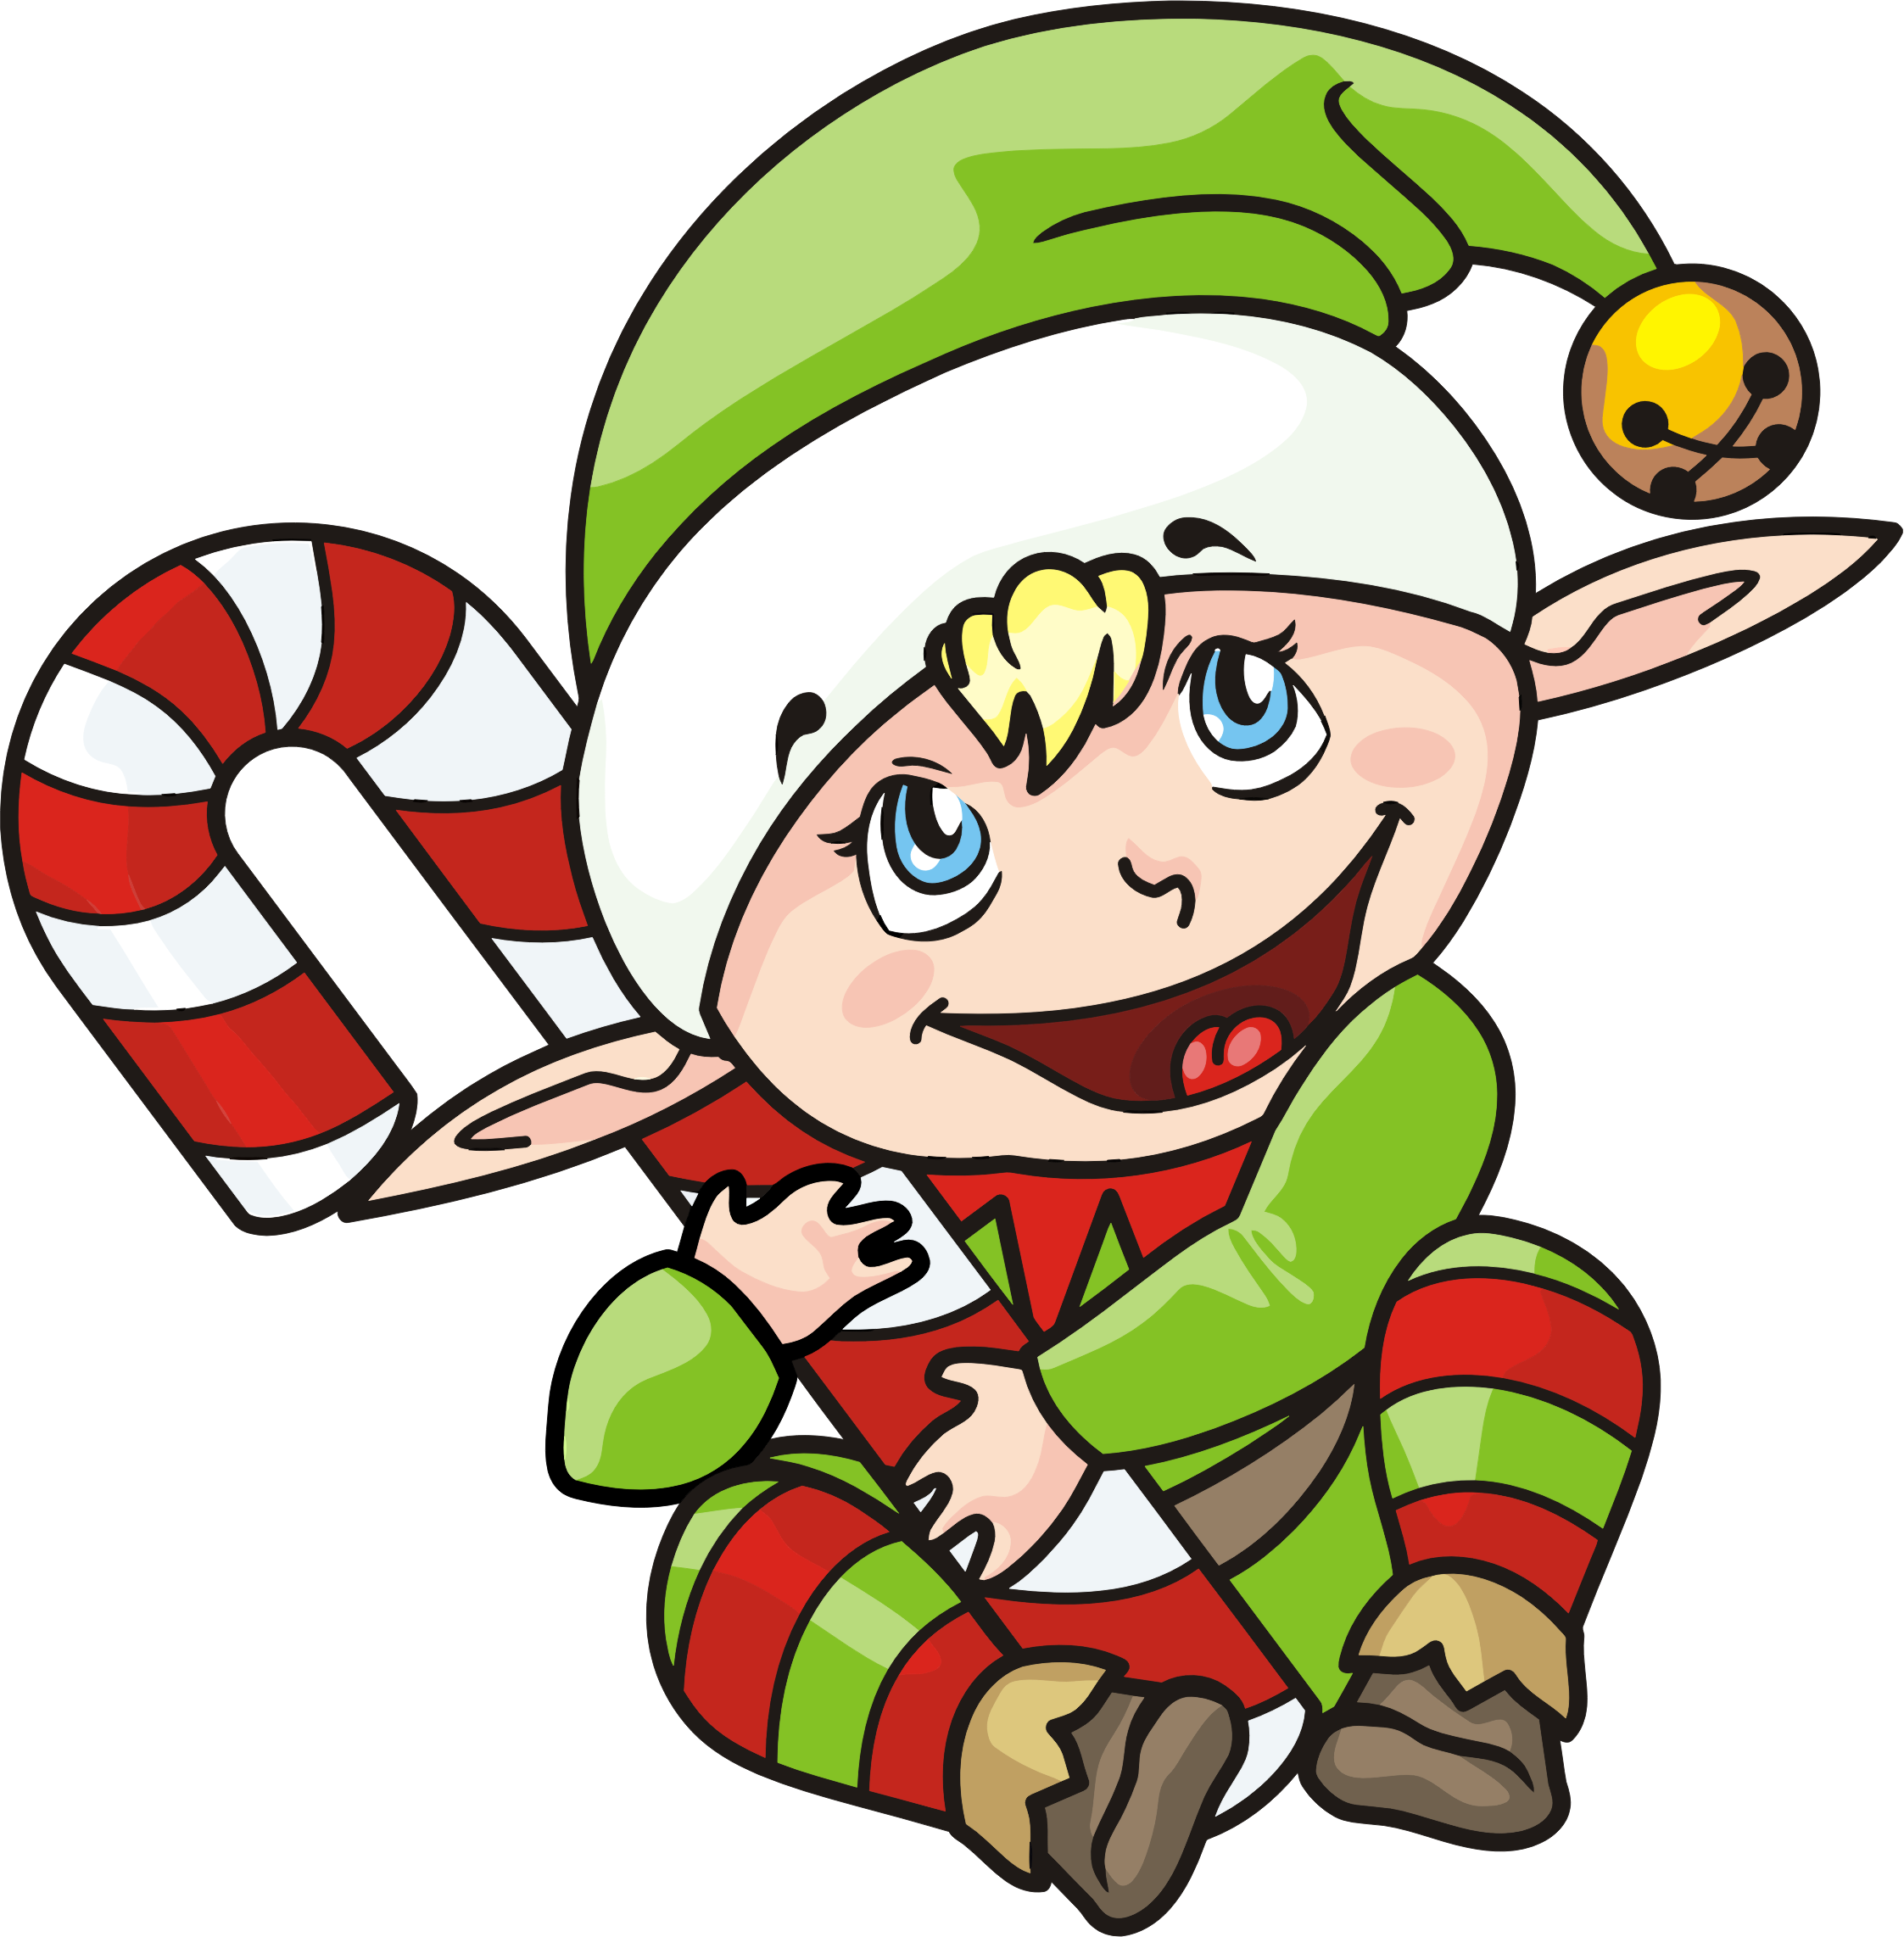 Christmas Elf by GDJ